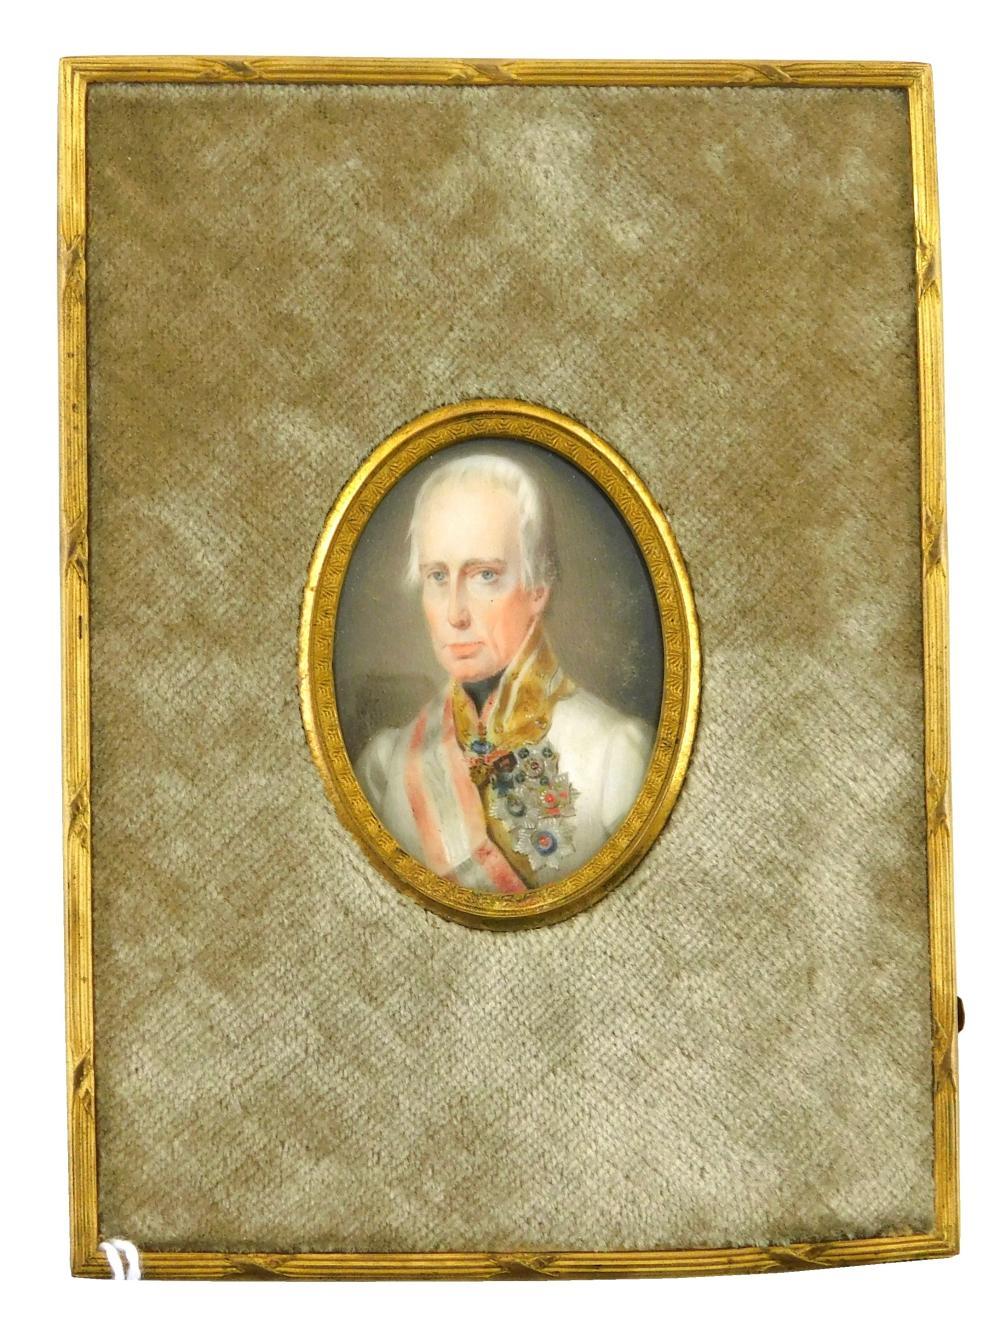 MINIATURE: Military Gentleman (Likely Emperor Franz II of Austria), oval support, grey hair, numerous medals, red and white sash, wh...